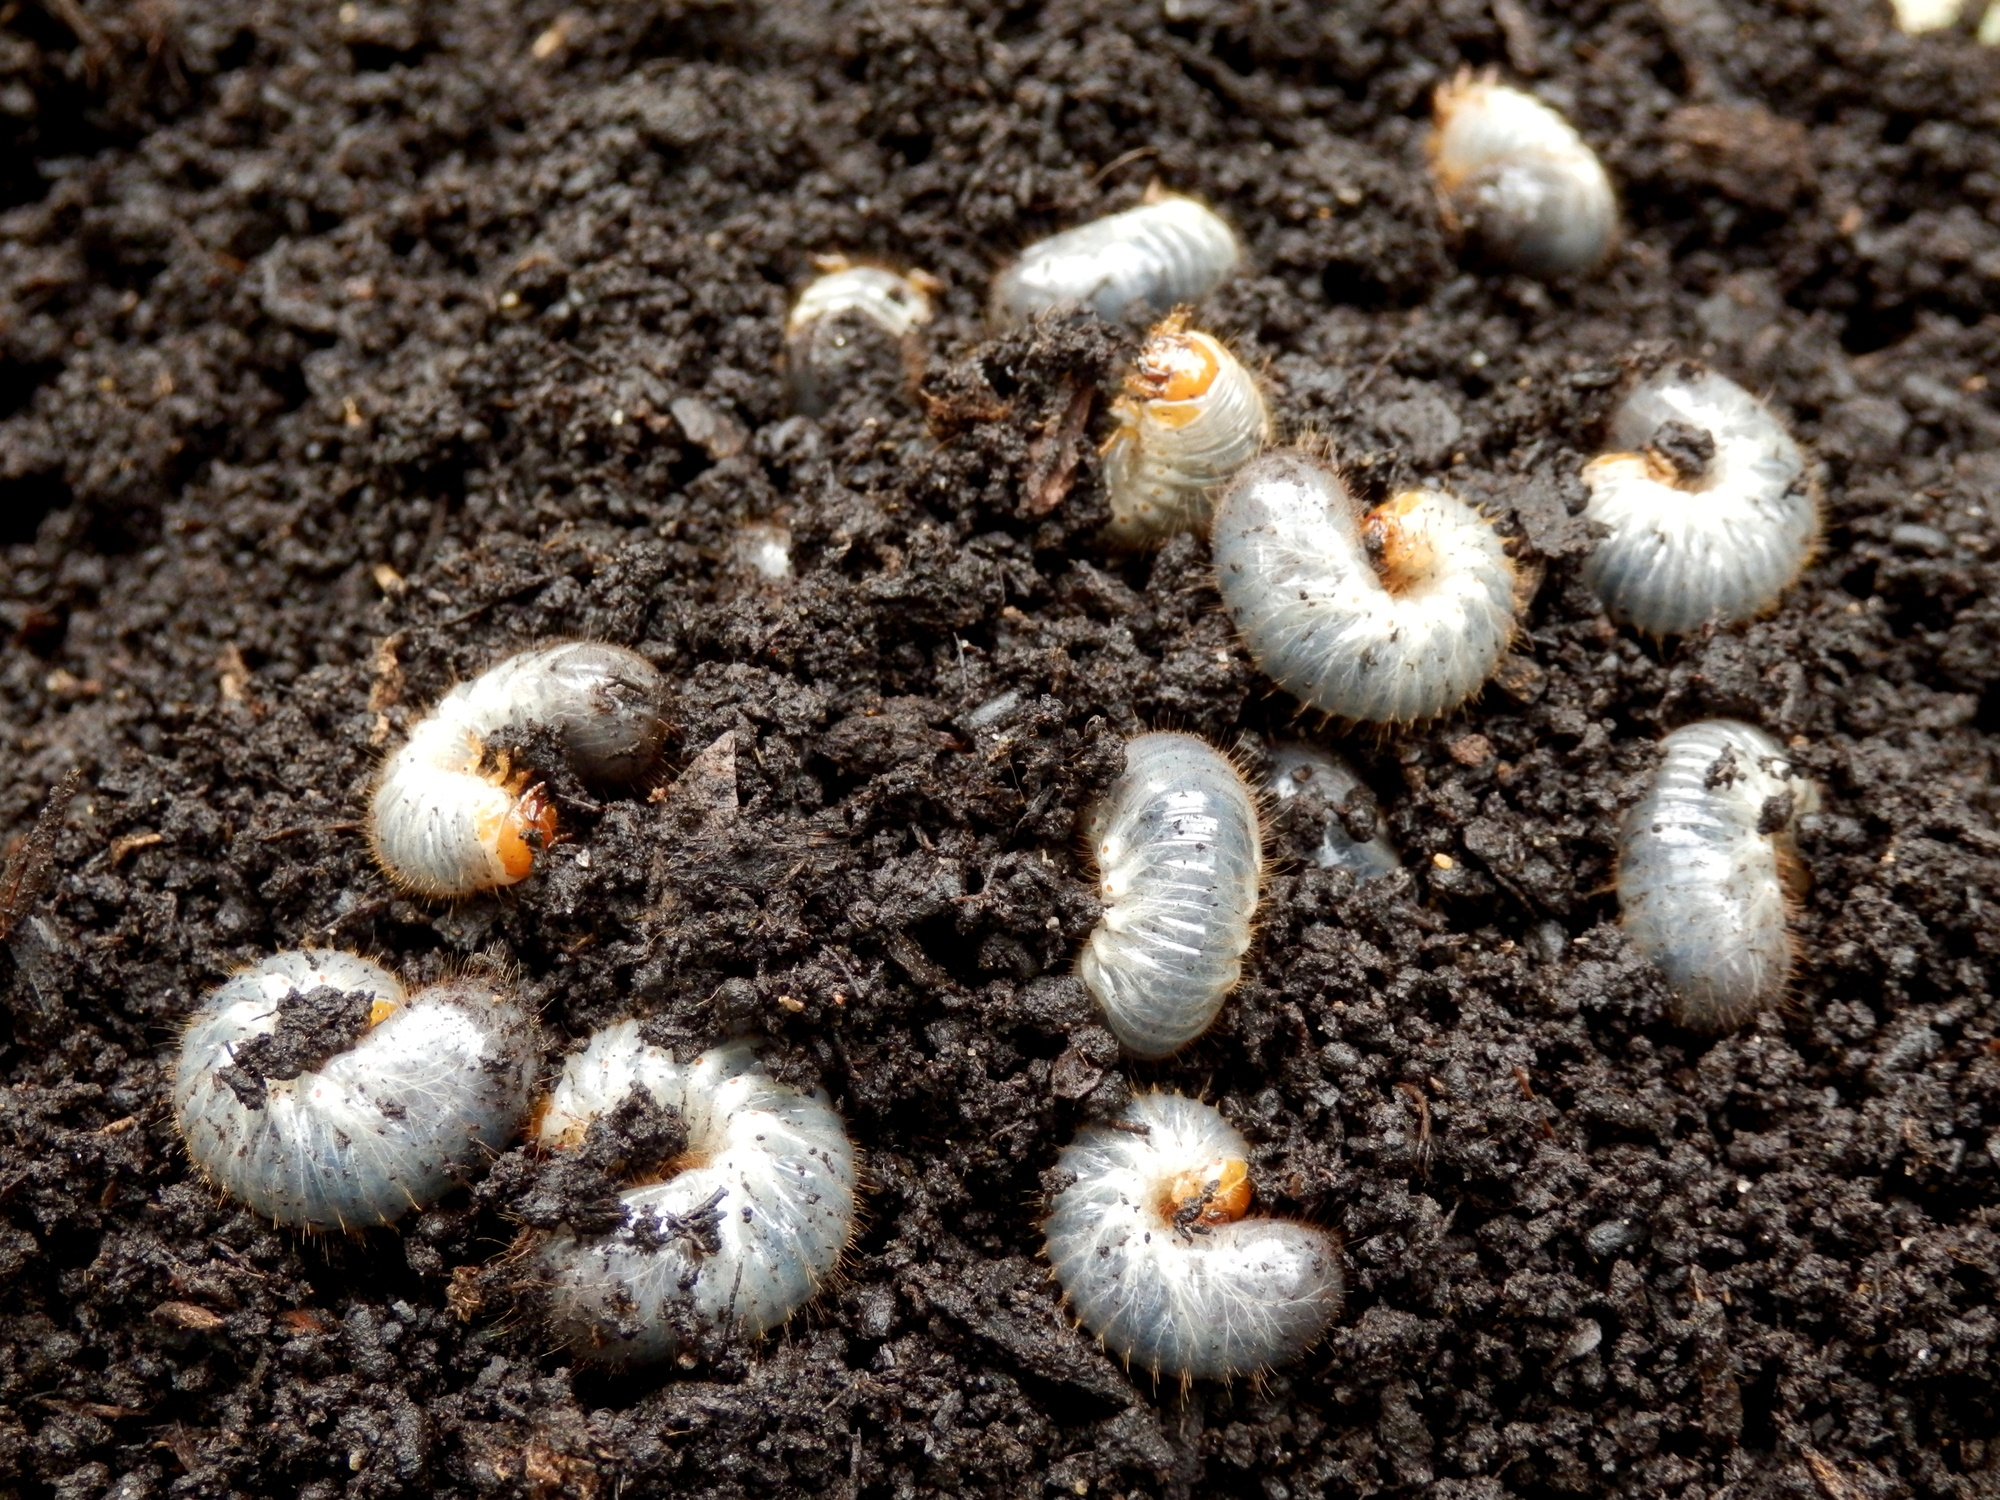 It takes only 8 or 10 grubs to ruin a square foot of lawn.